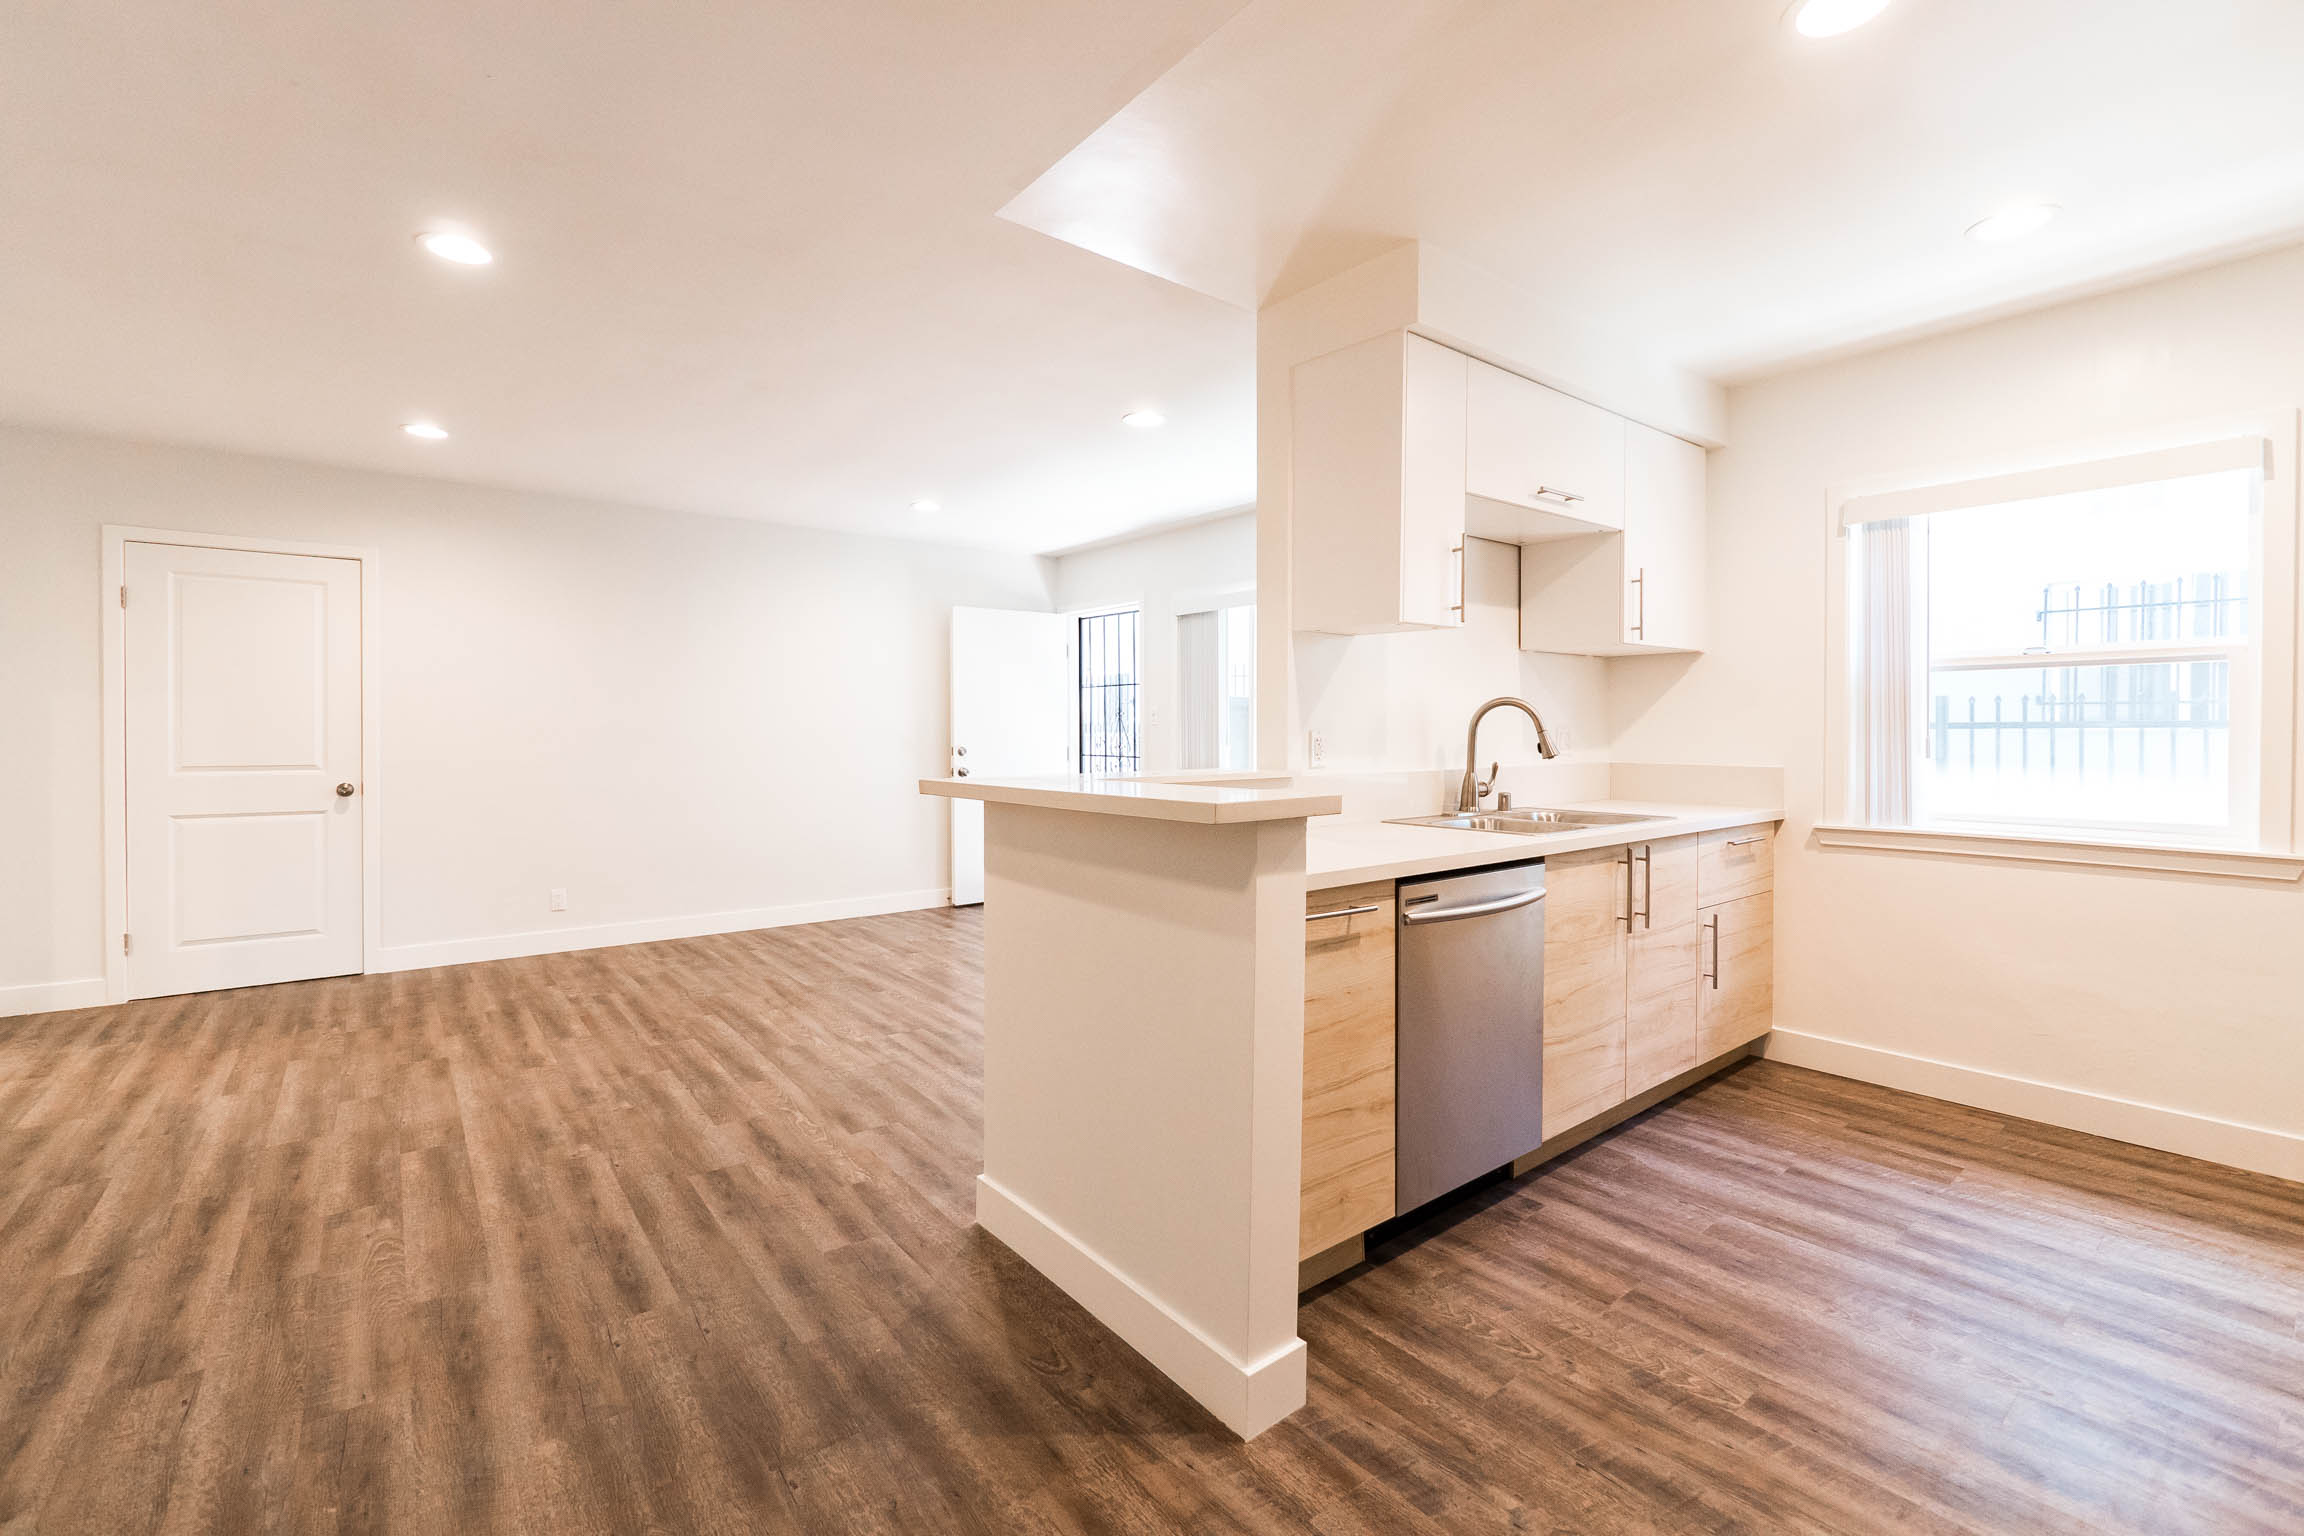 Shazooow! Chic and Unique Ultra Modern Dream 2Bed/1Bath - Private Patio- Stainless Kitch-DW-W/D-A/C-